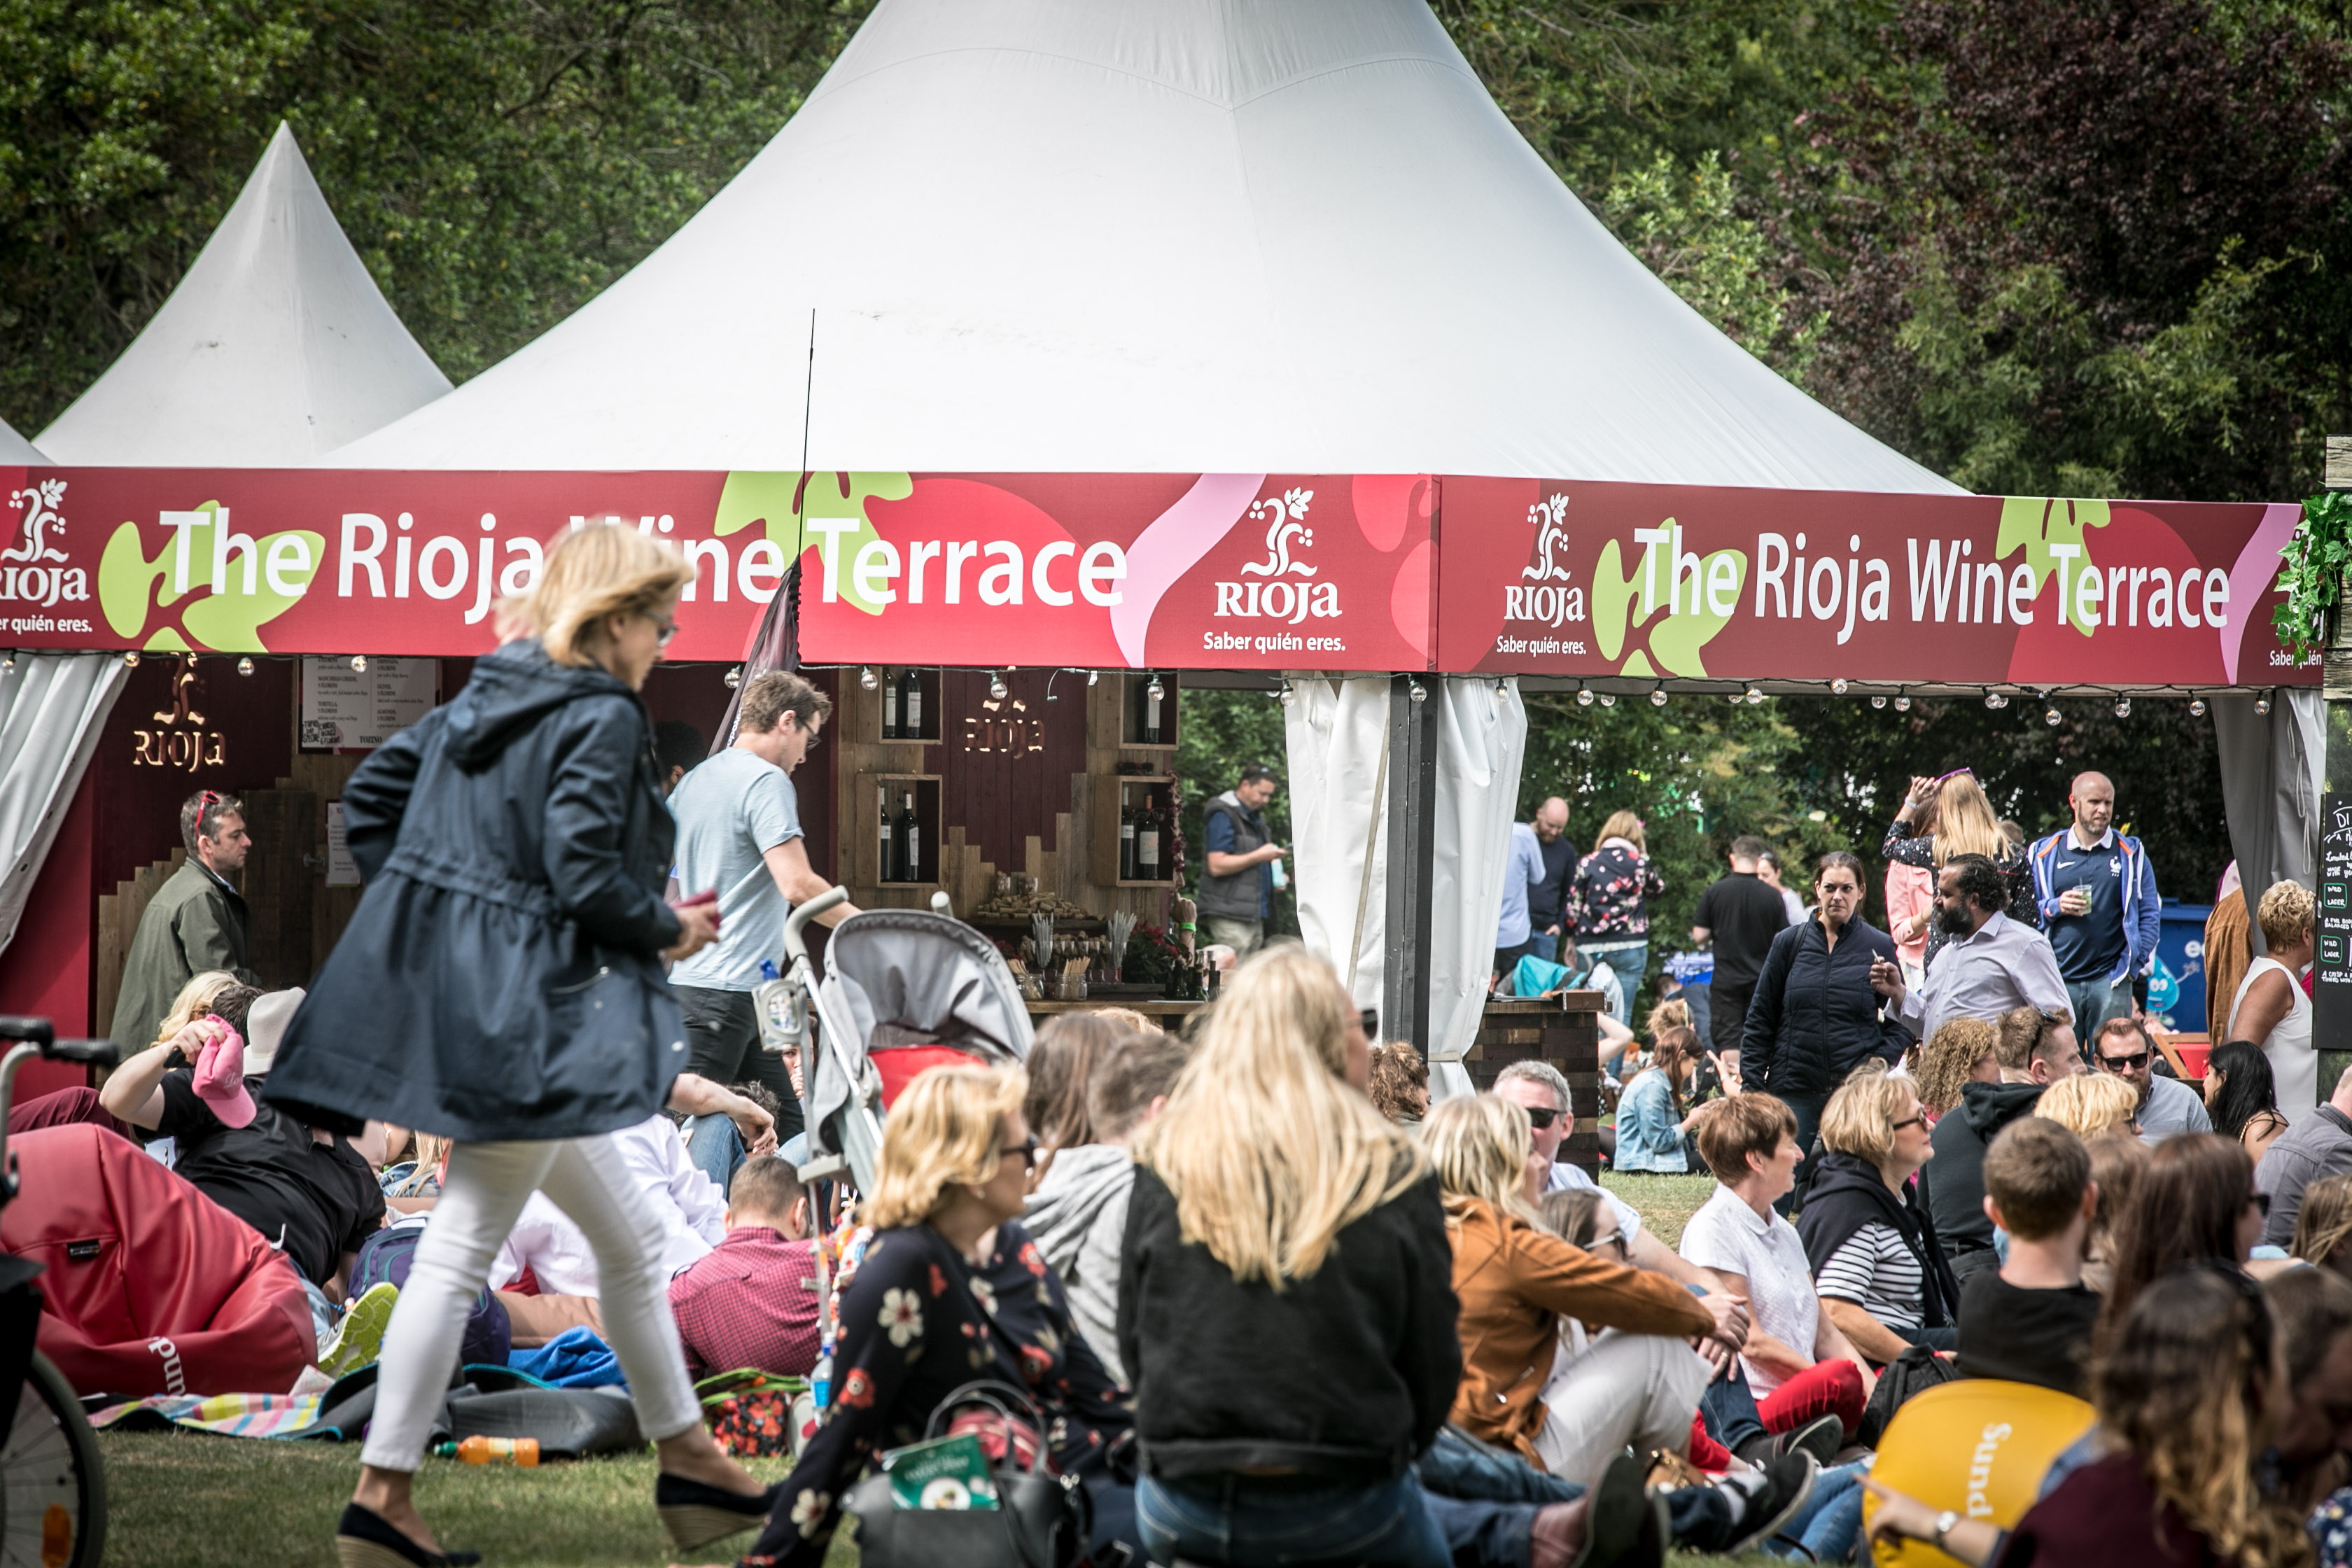 Rioja wines arouse the interest of more than 33,000 young people attending 'Taste of Dublin'